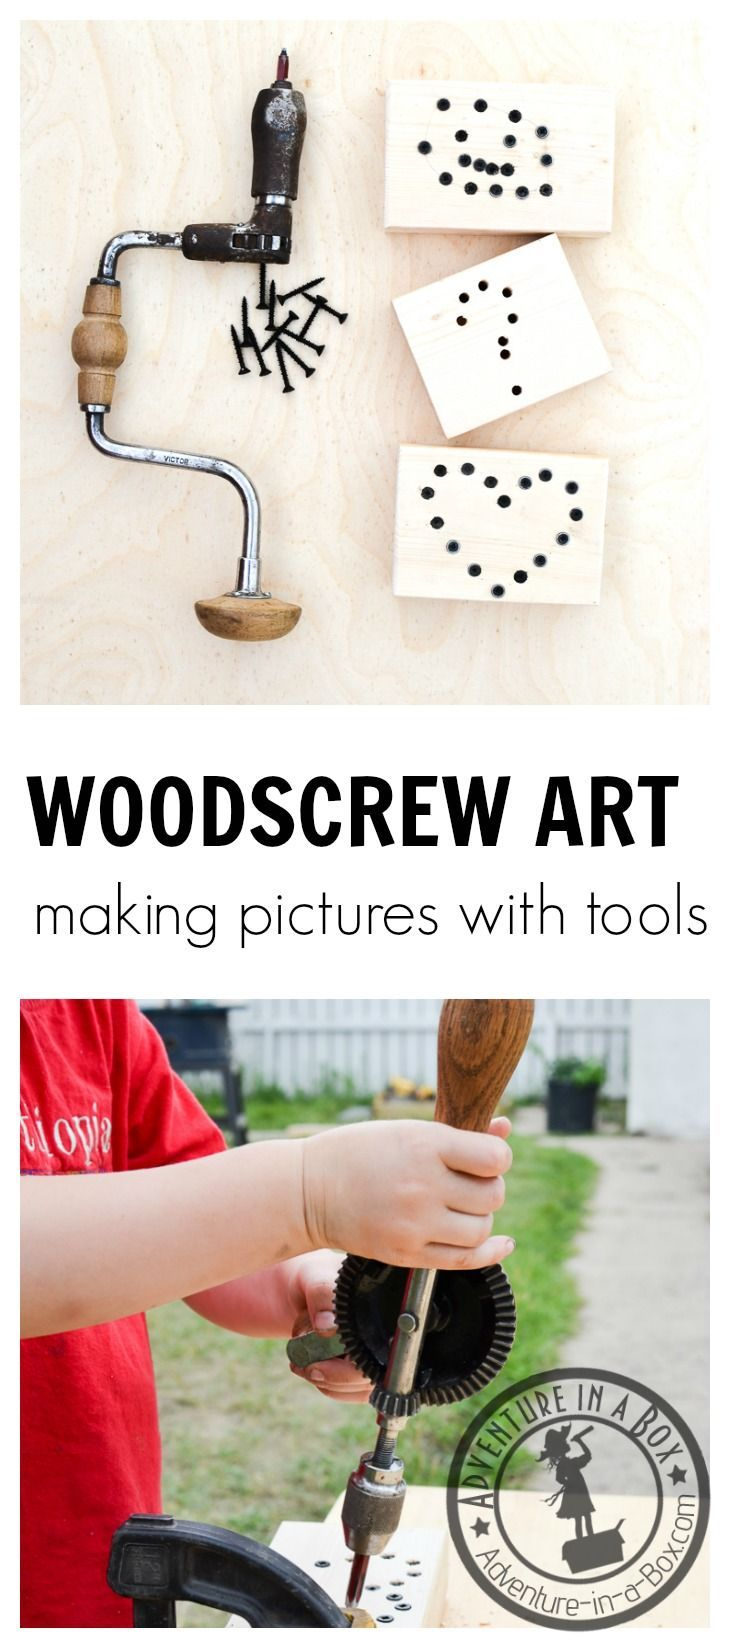 Woodscrew Art: Introduce children to screwdriving tools while making rustic and quirky woodscrew art. Simple Montessori-inspired steps.…